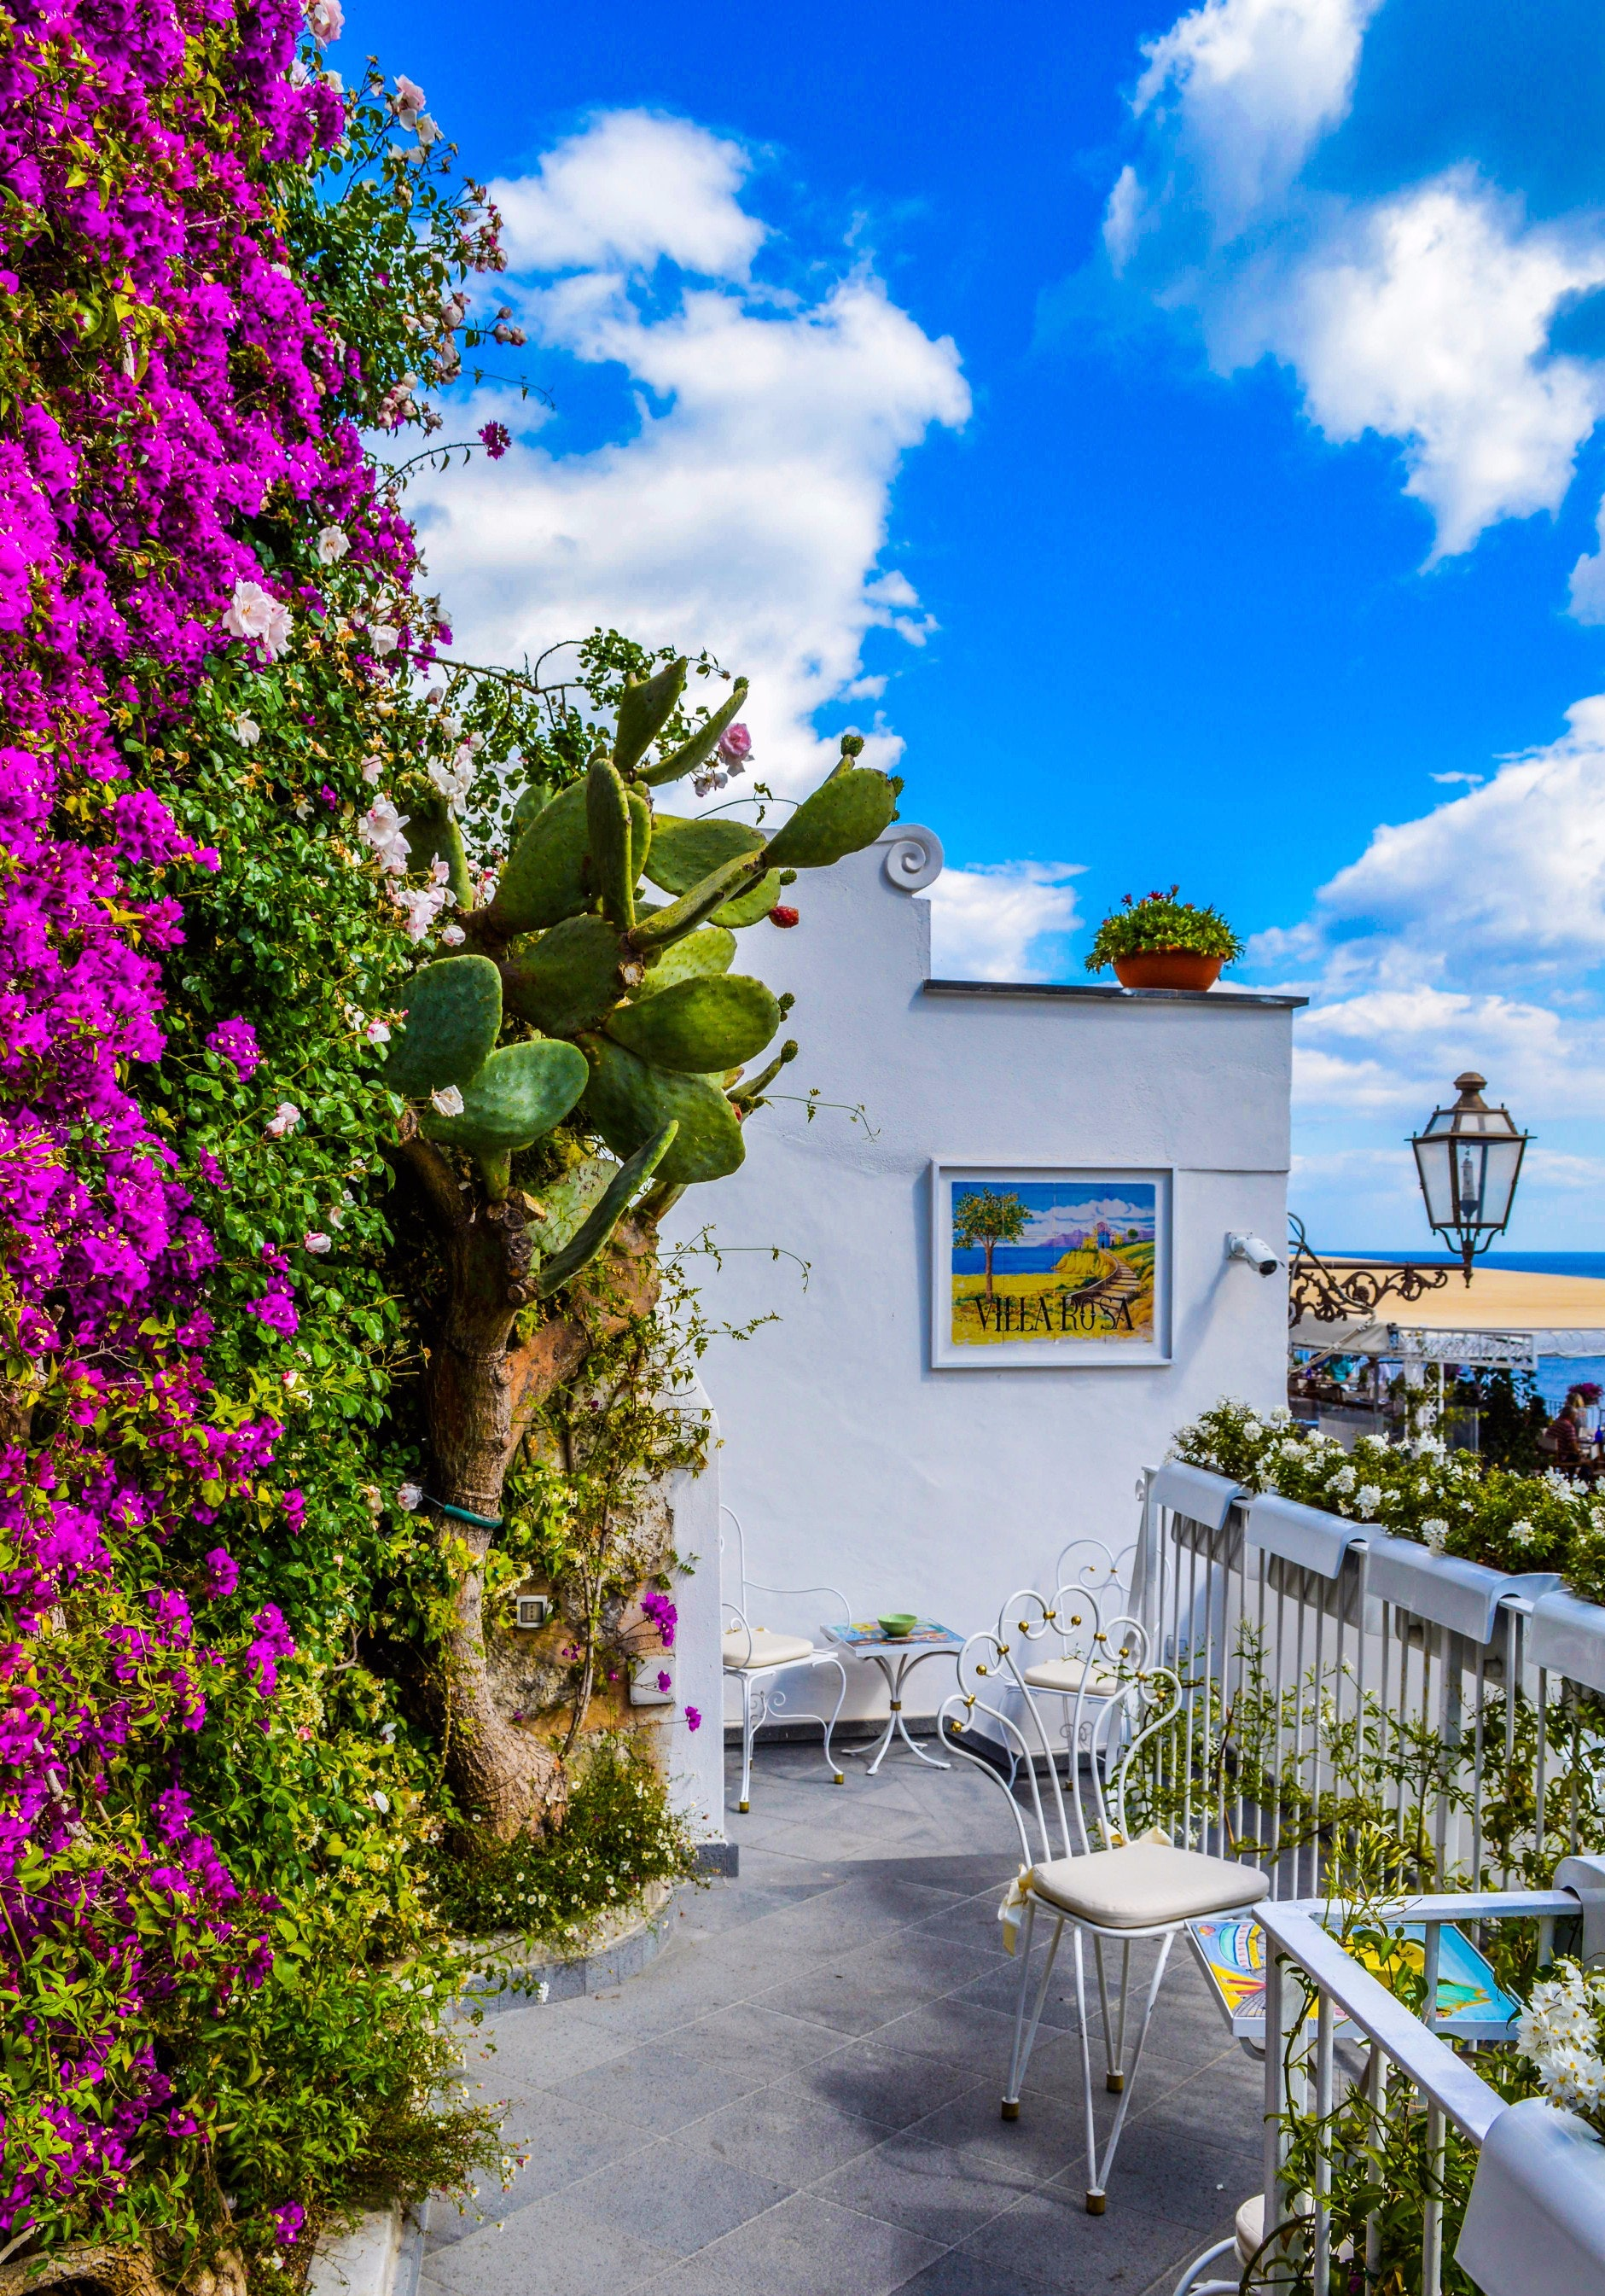 Veranda surrounded by green cactus and pink bougainvillea photo